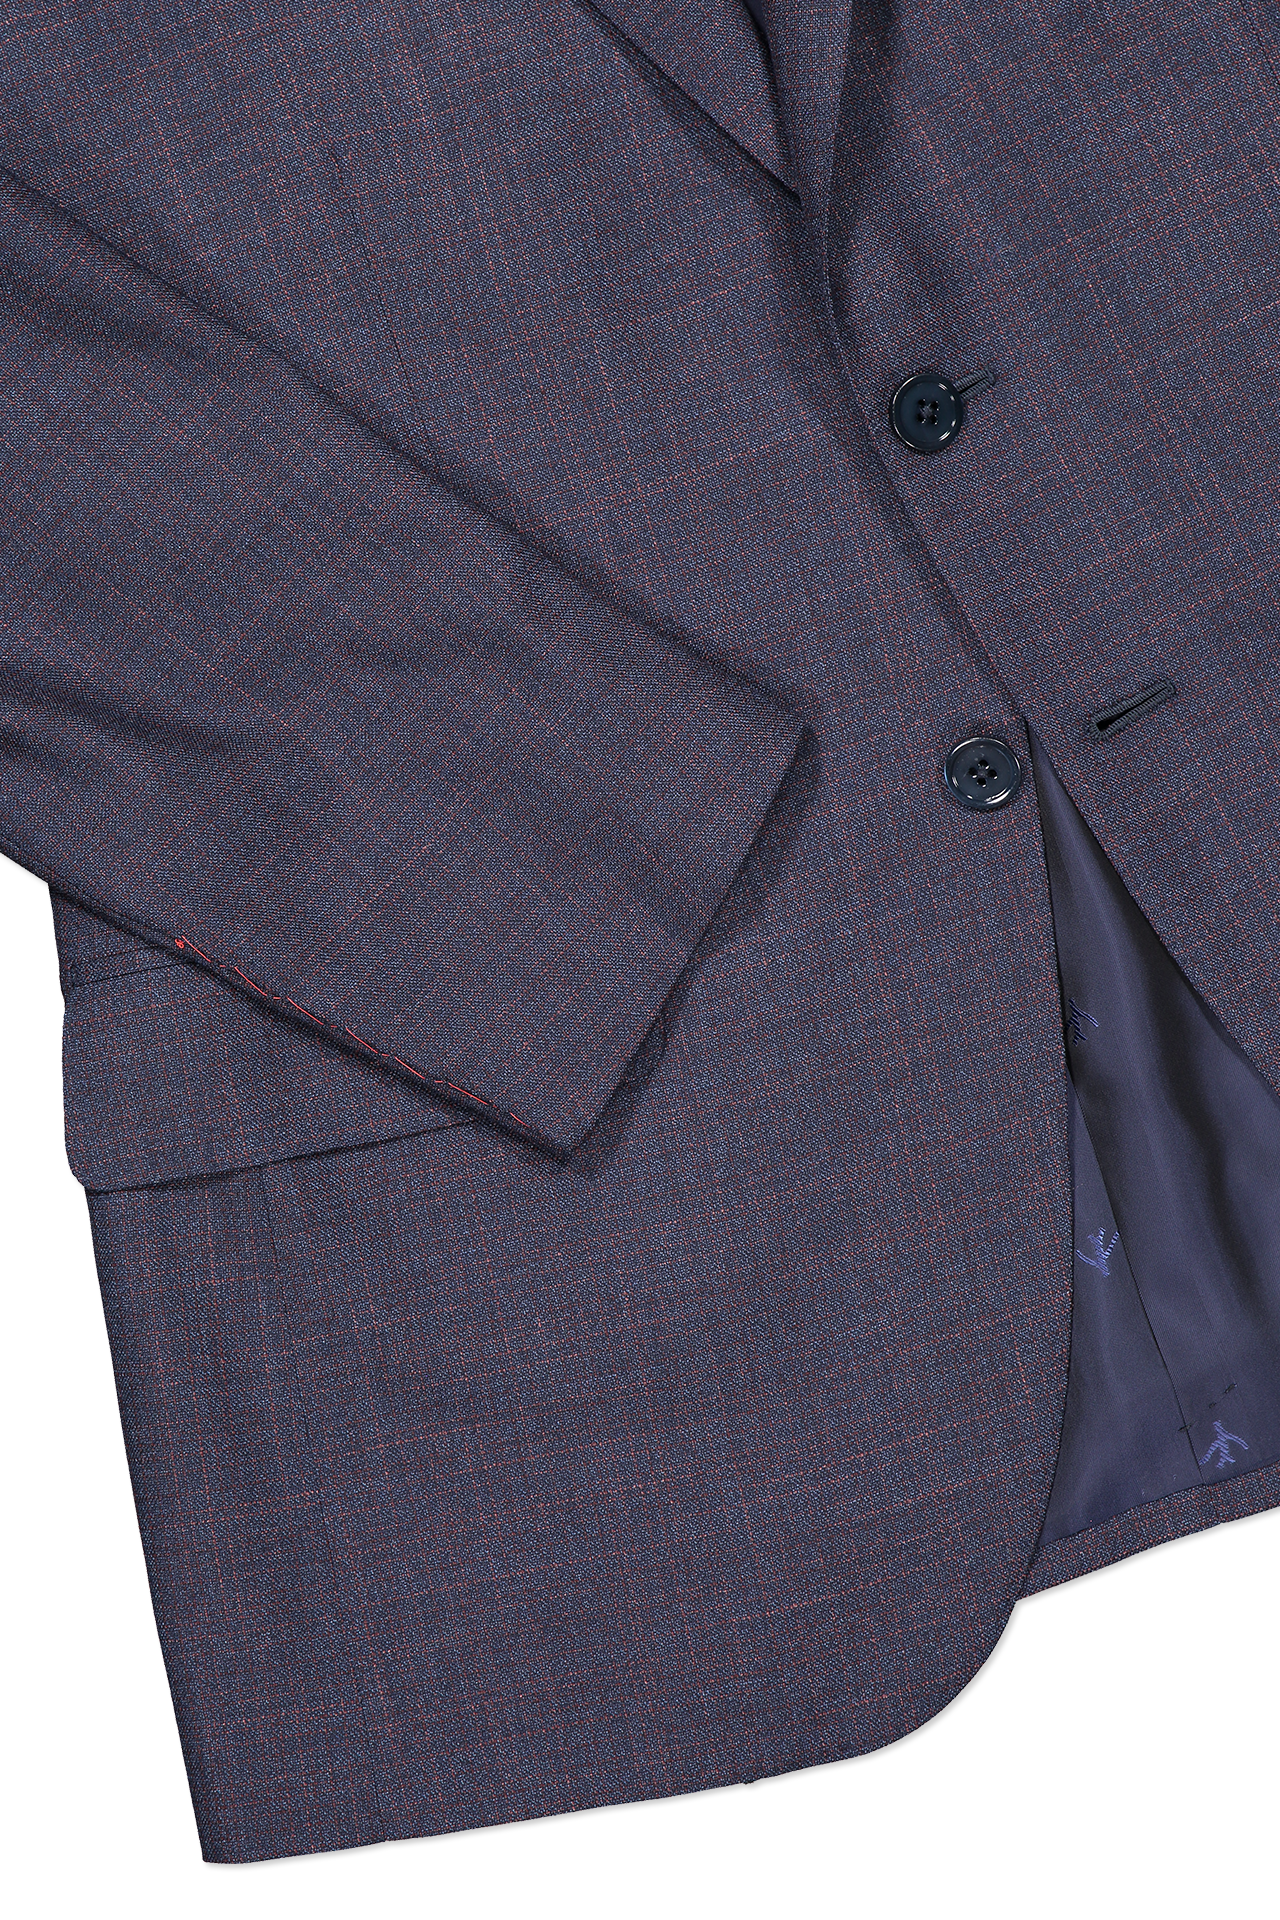 Hemline and cuff detail image of Isaia Navy Silky Linen Suit